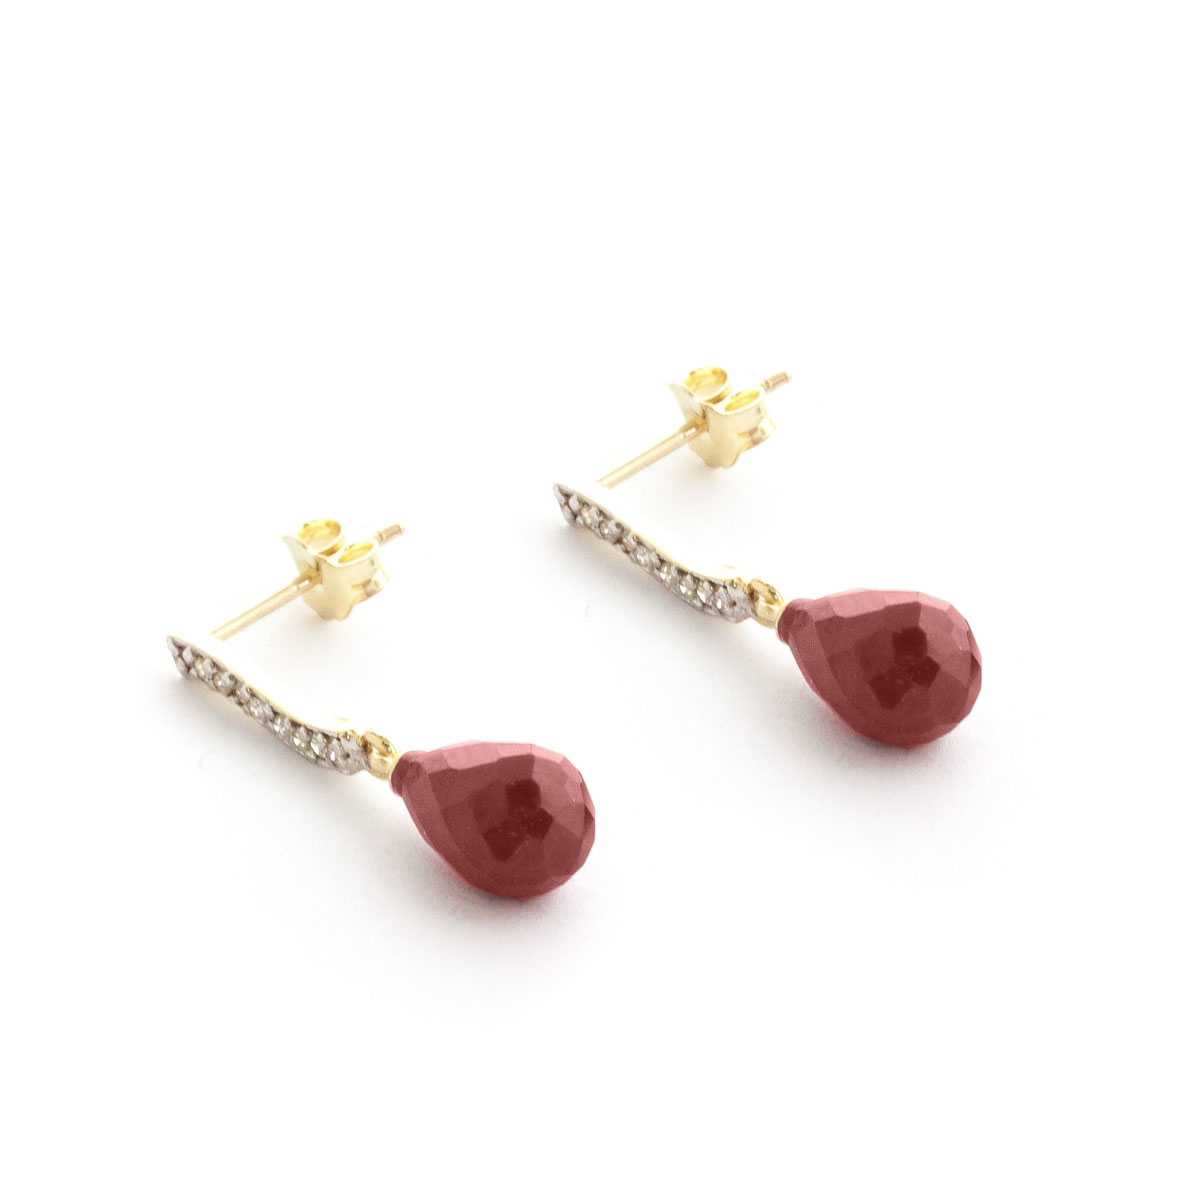 Ruby & Diamond Droplet Earrings in 9ct Gold